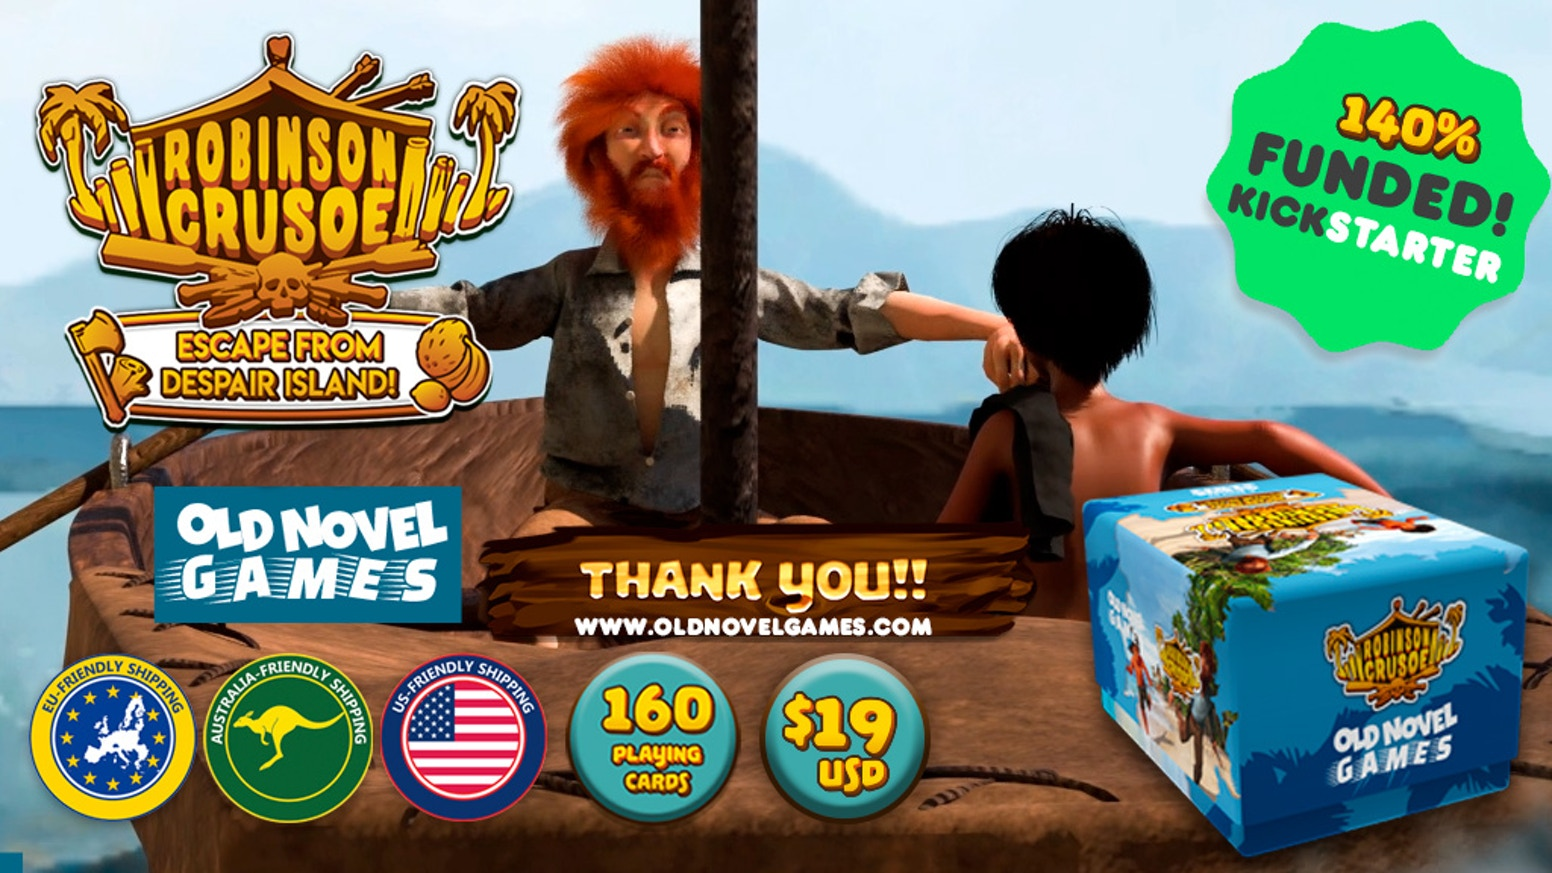 A dynamic game that puts you into Crusoe's shoes, shipwrecked and stranded on an island, you´ll need to survive and escape to win!